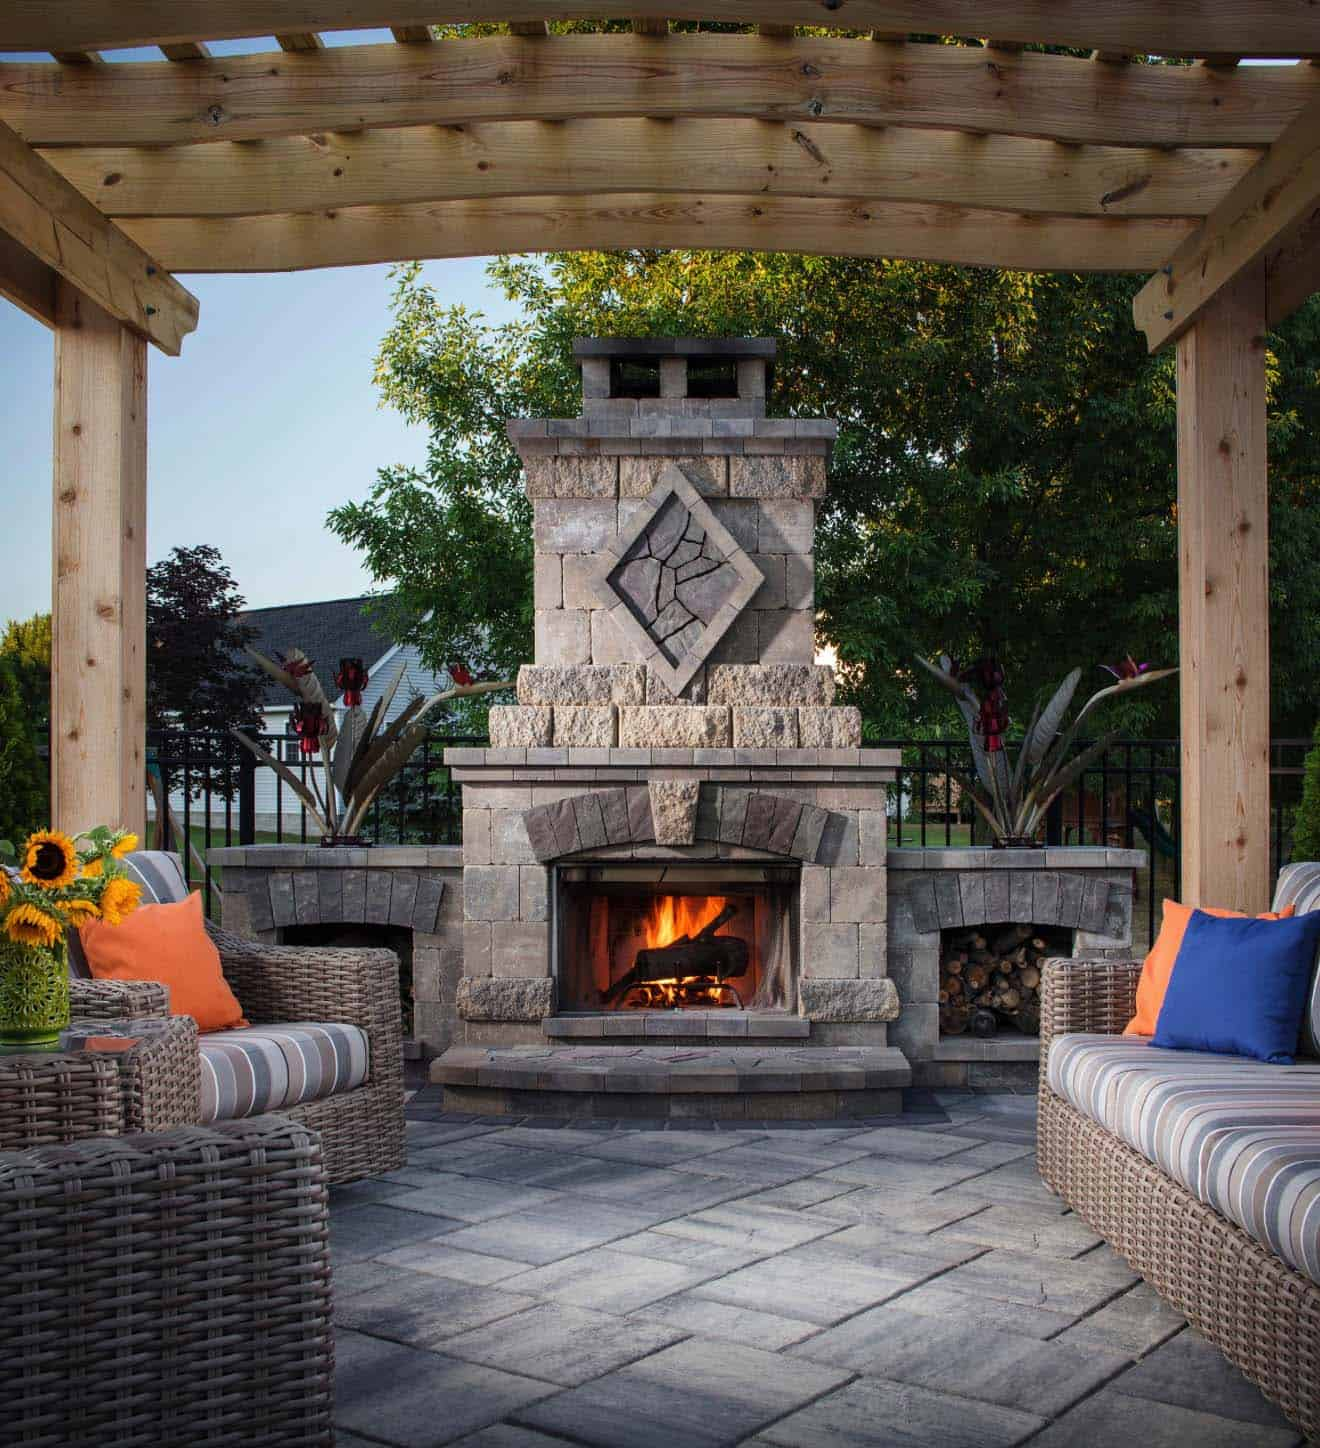 30+ Irresistible outdoor fireplace ideas that will leave ... on Small Outdoor Fireplace Ideas id=83564